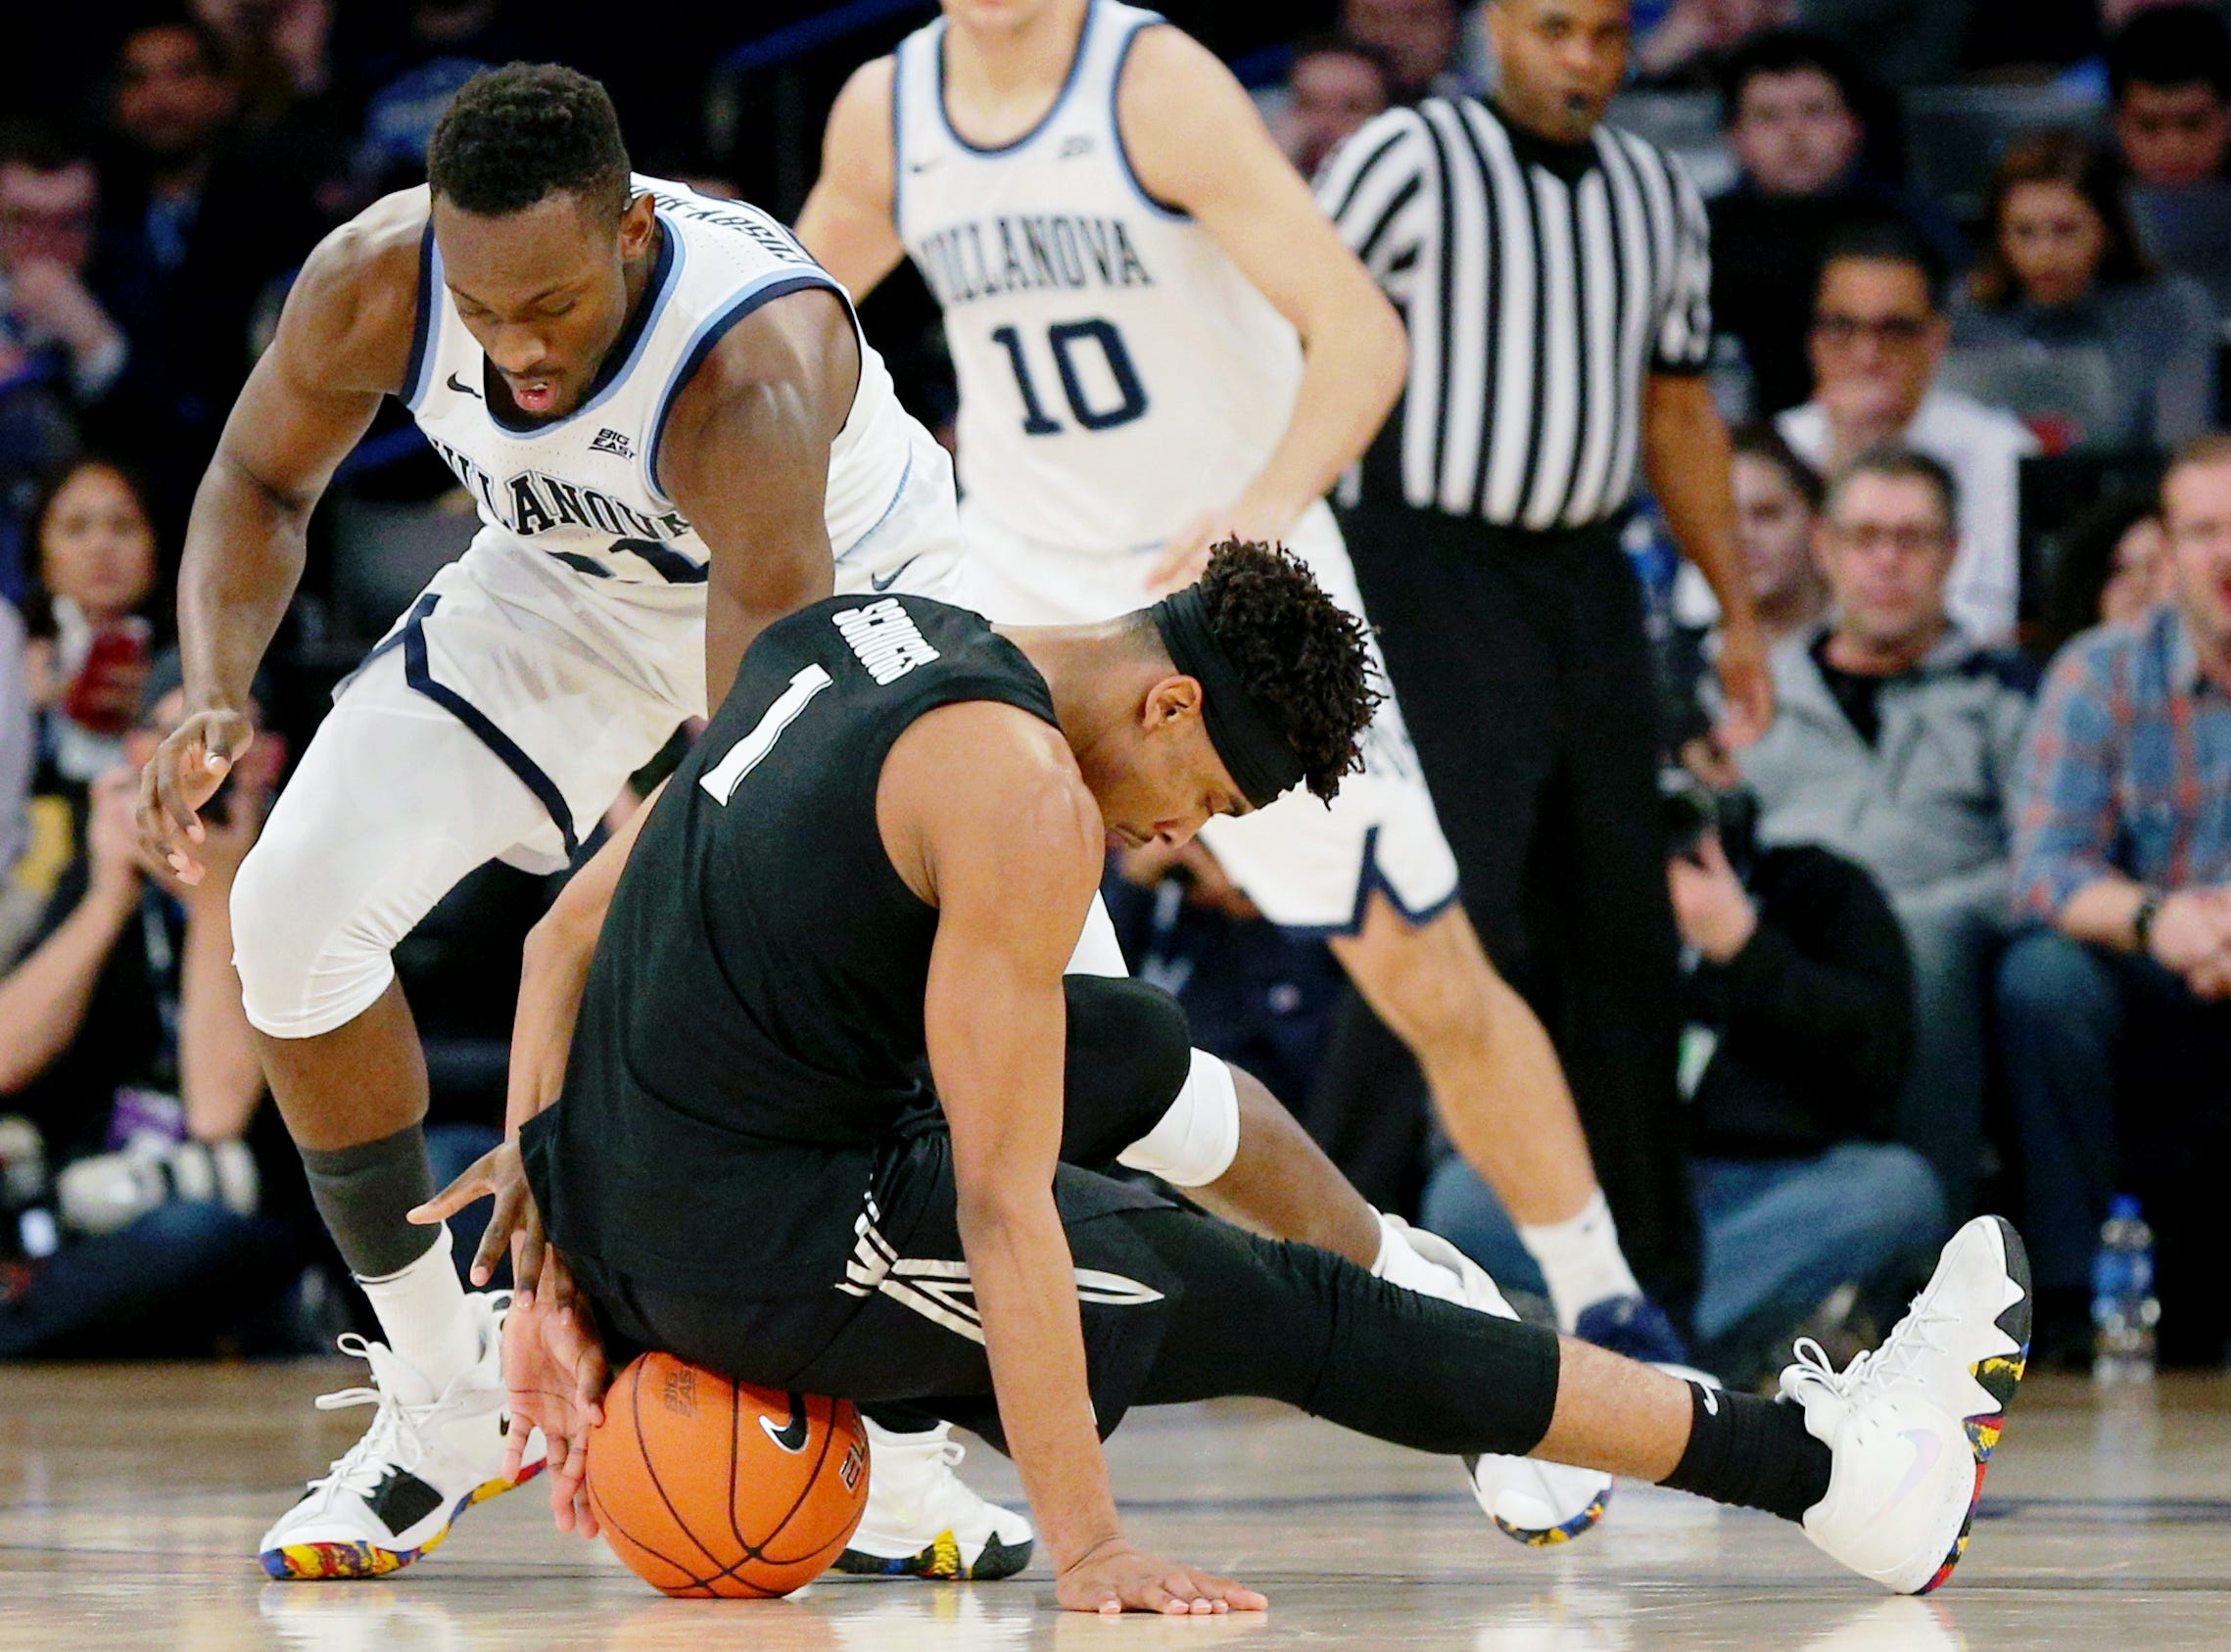 March 15: Xavier Musketeers guard Paul Scruggs (1) and Villanova Wildcats forward Dhamir Cosby-Roundtree (21) scramble for the ball during the first half of a Big East tournament game.